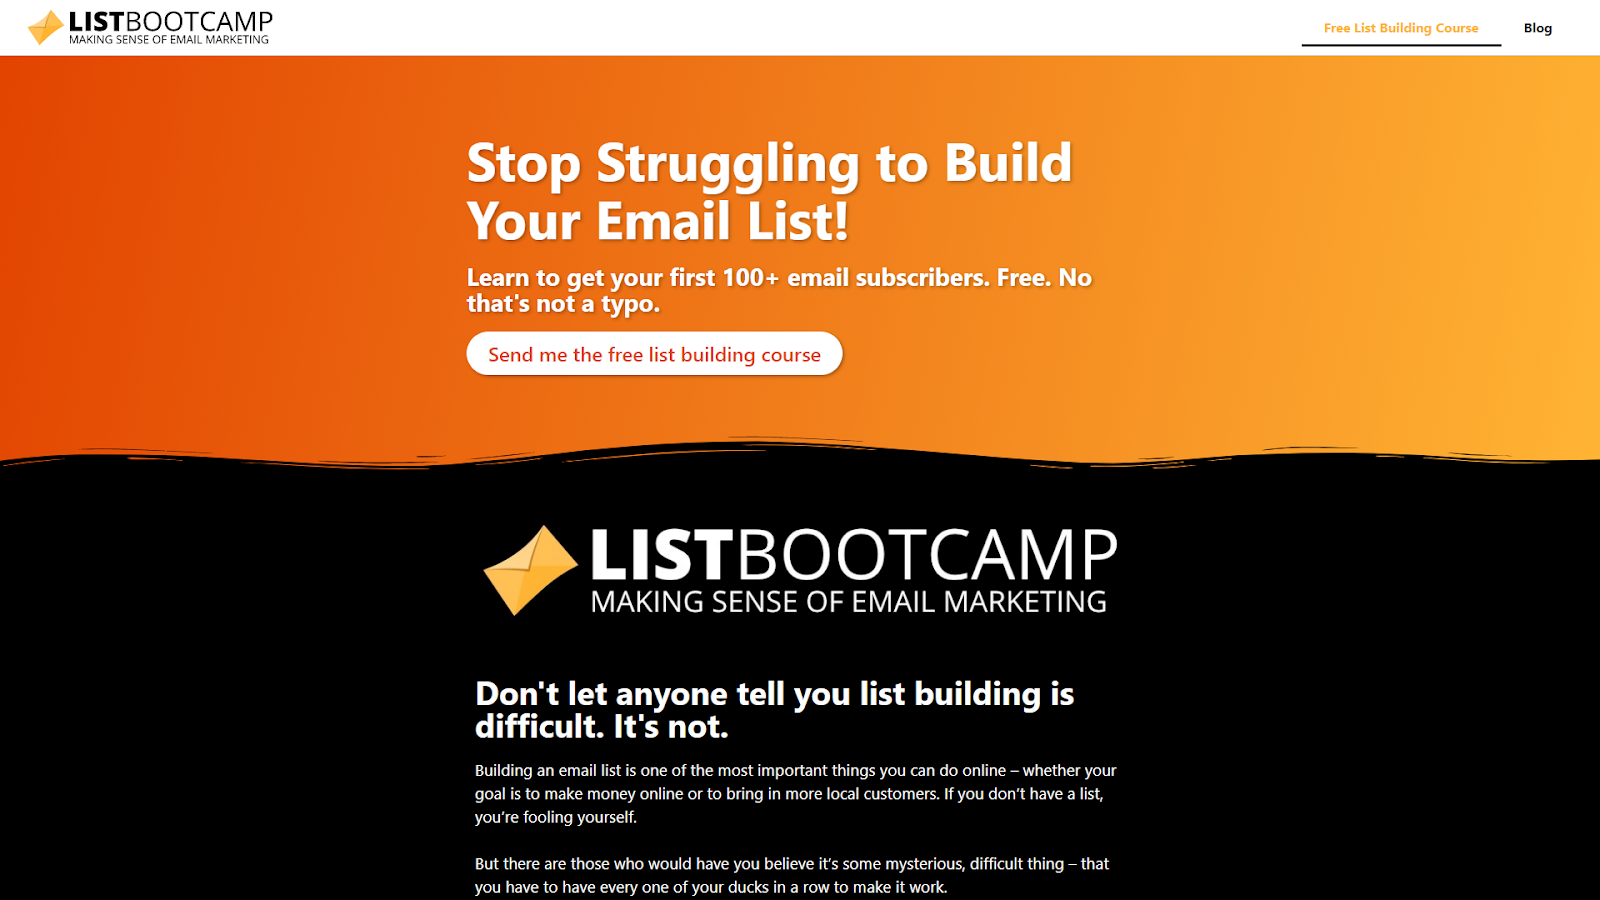 ListBootcamp is one of my lead magnets.